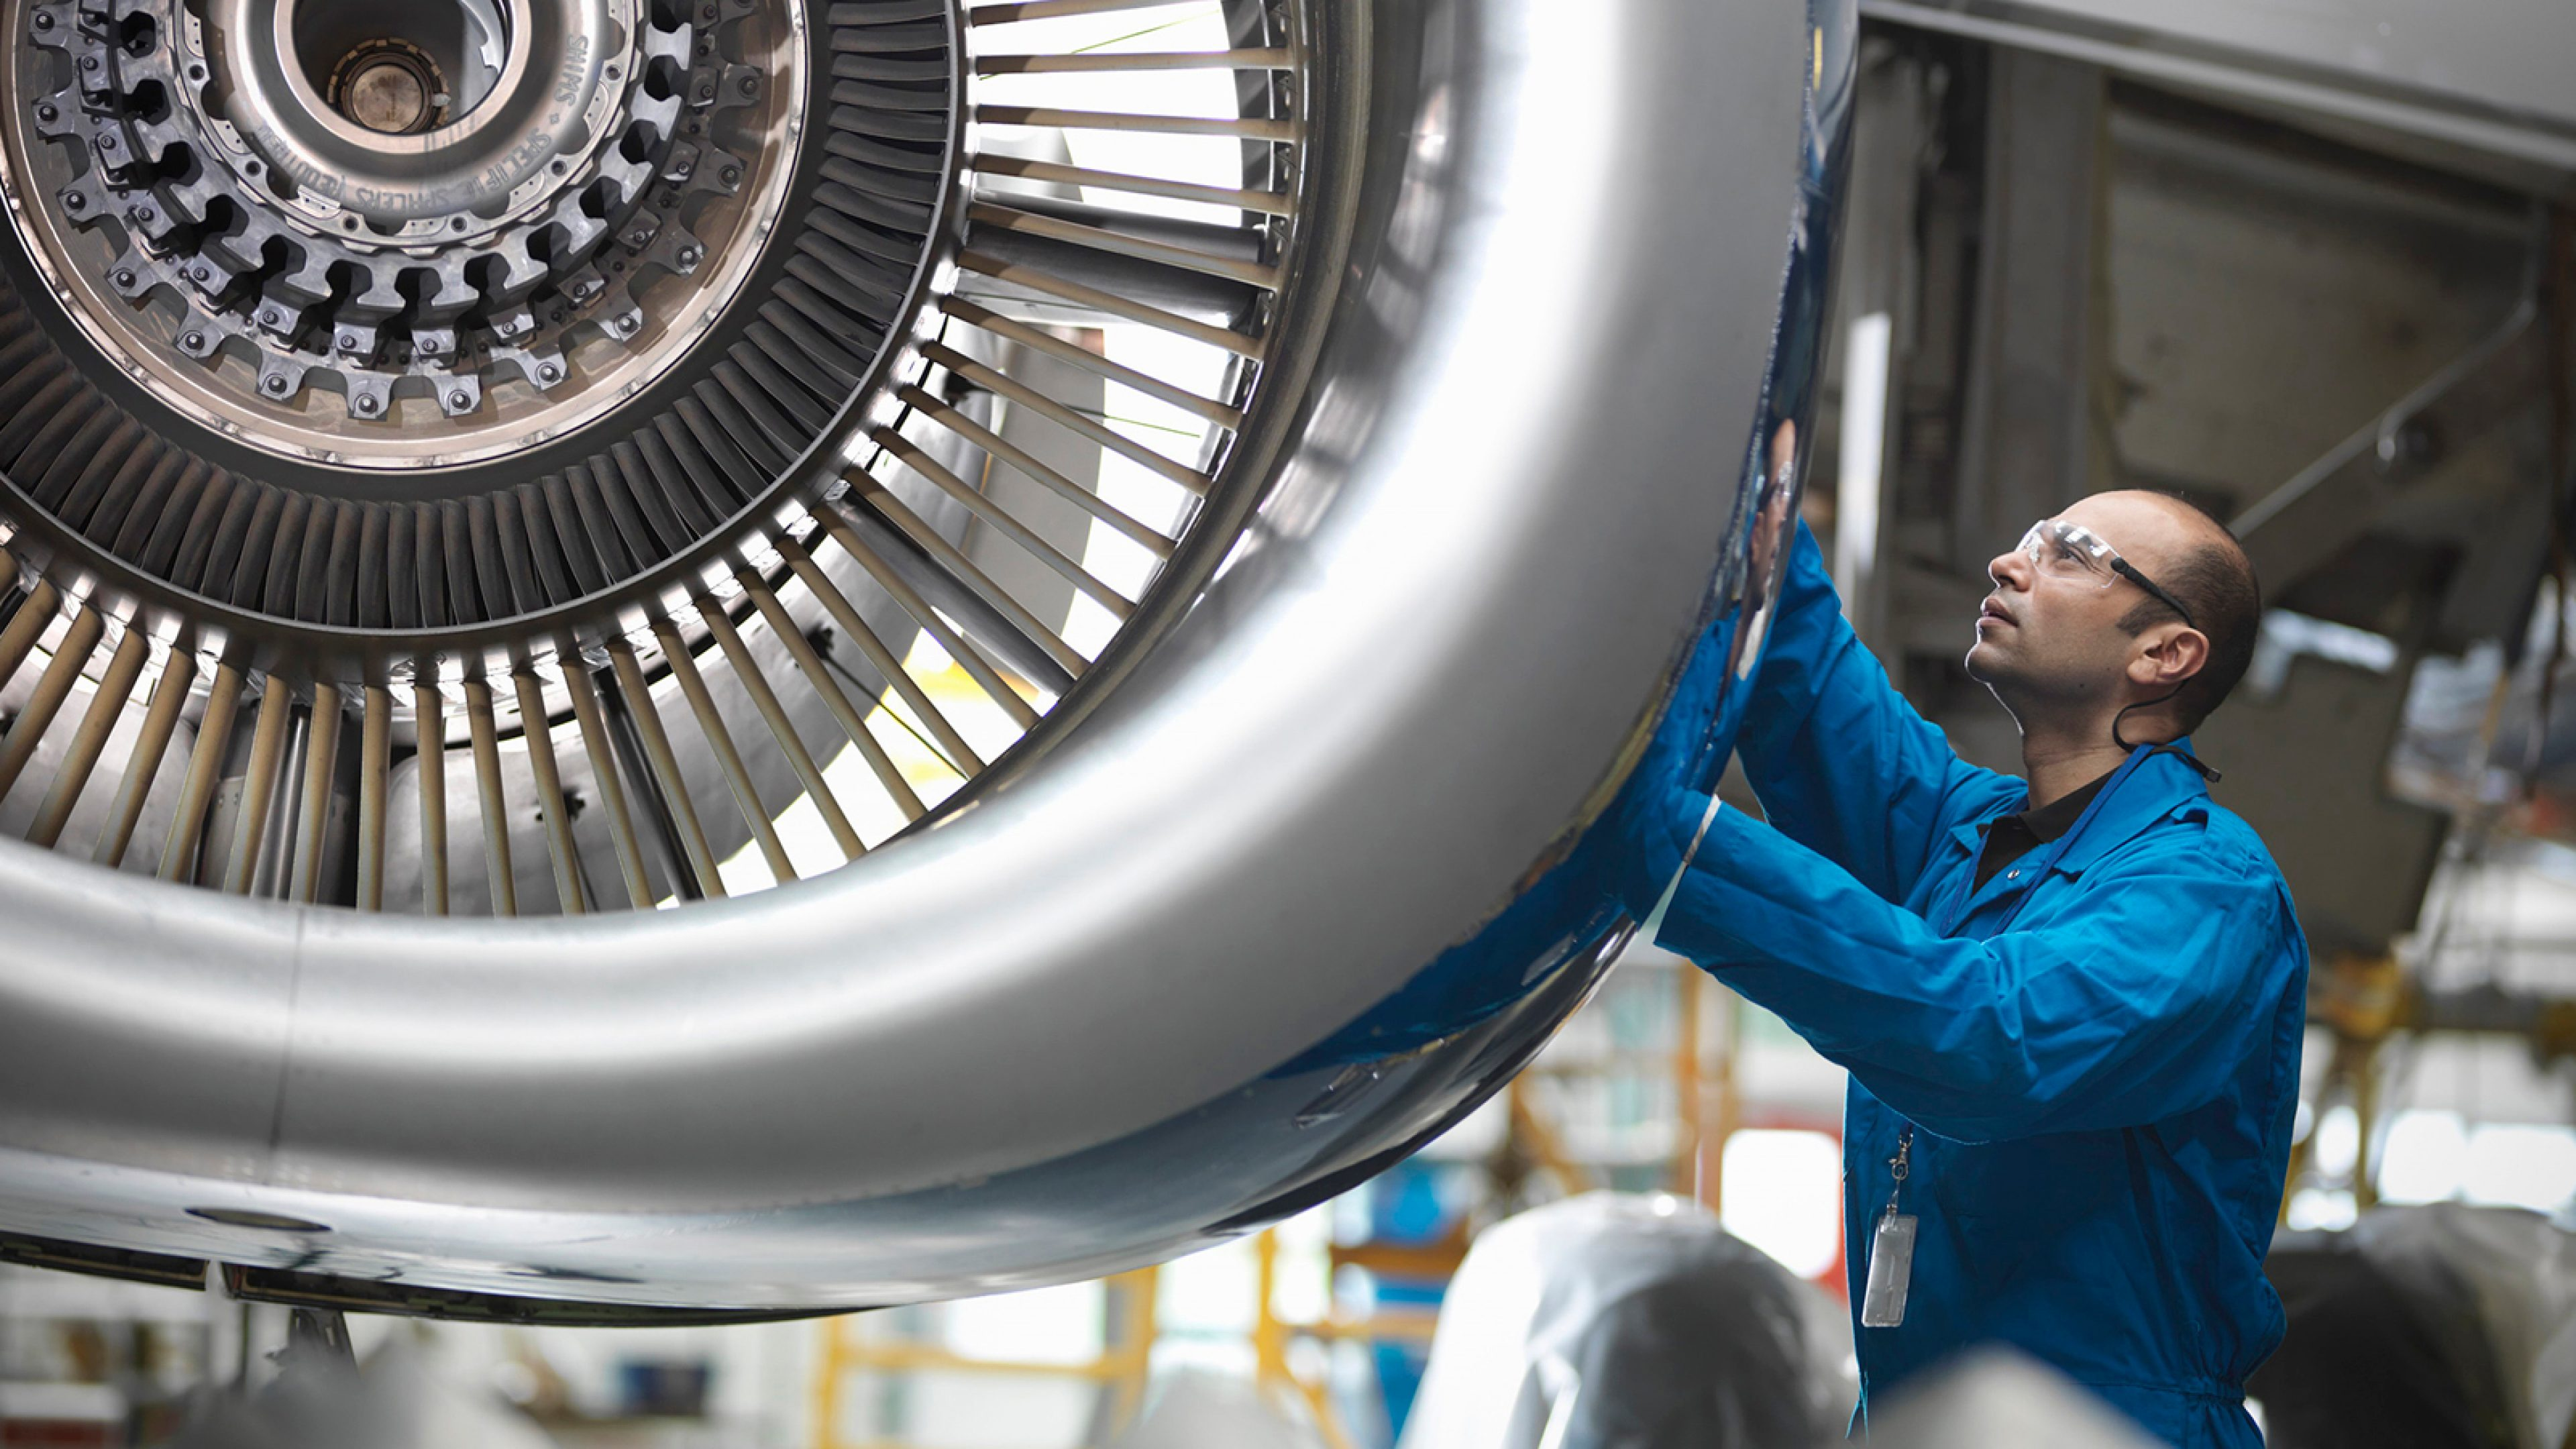 Engineer working on jet engine